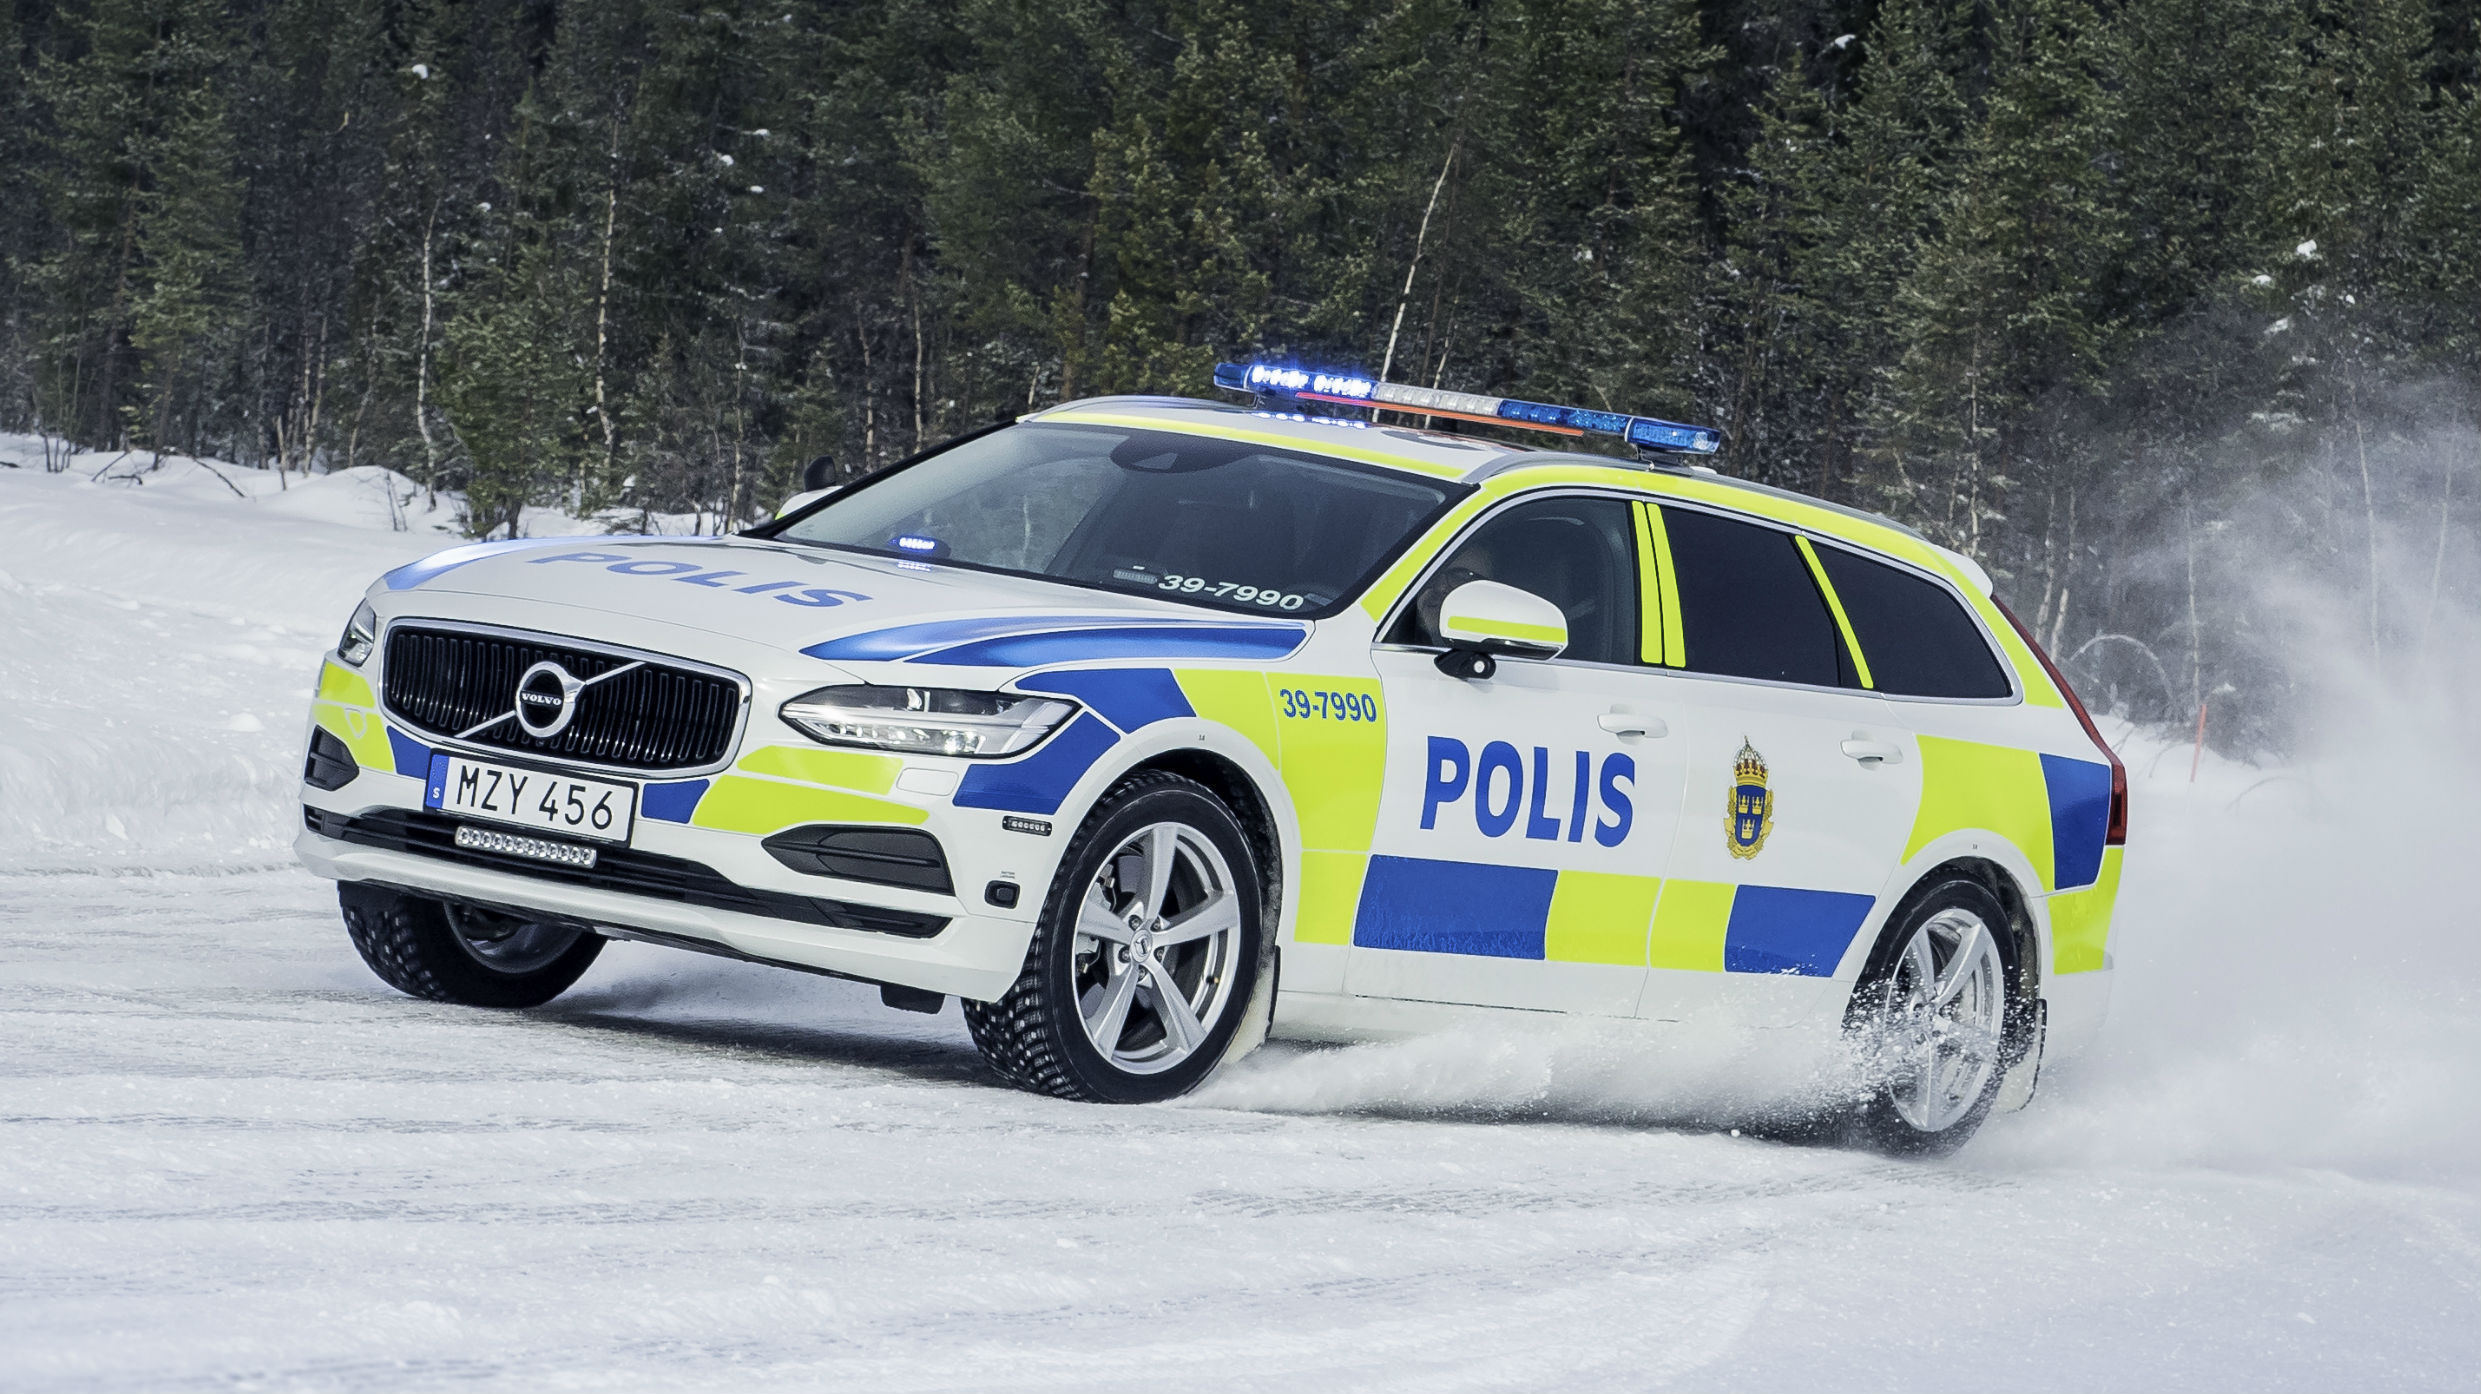 Exclusive: we drive a Volvo V90 police car | Motoring Research